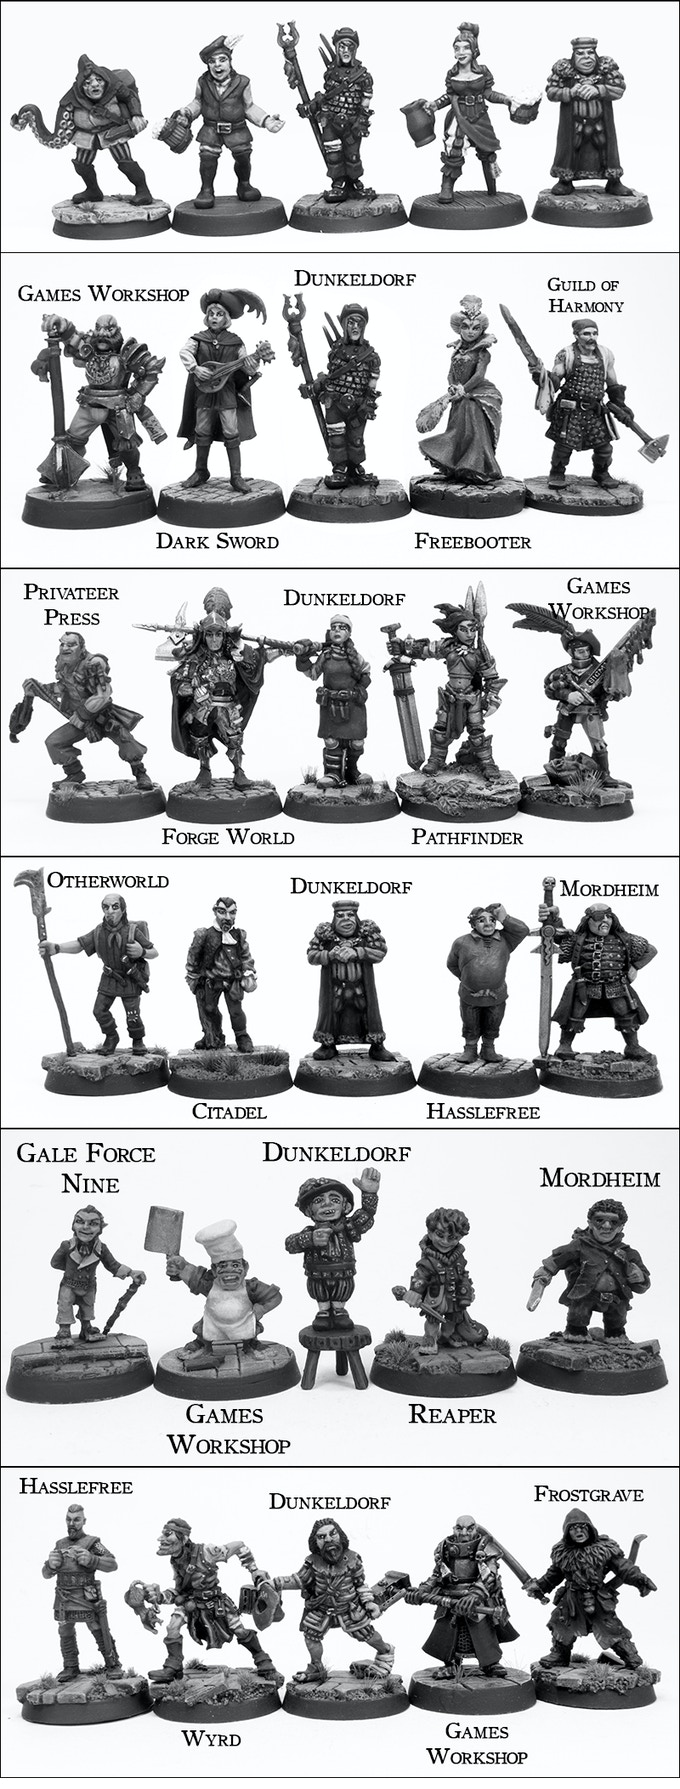 Dunkeldorf Miniatures Scale Comparison - King Games.png